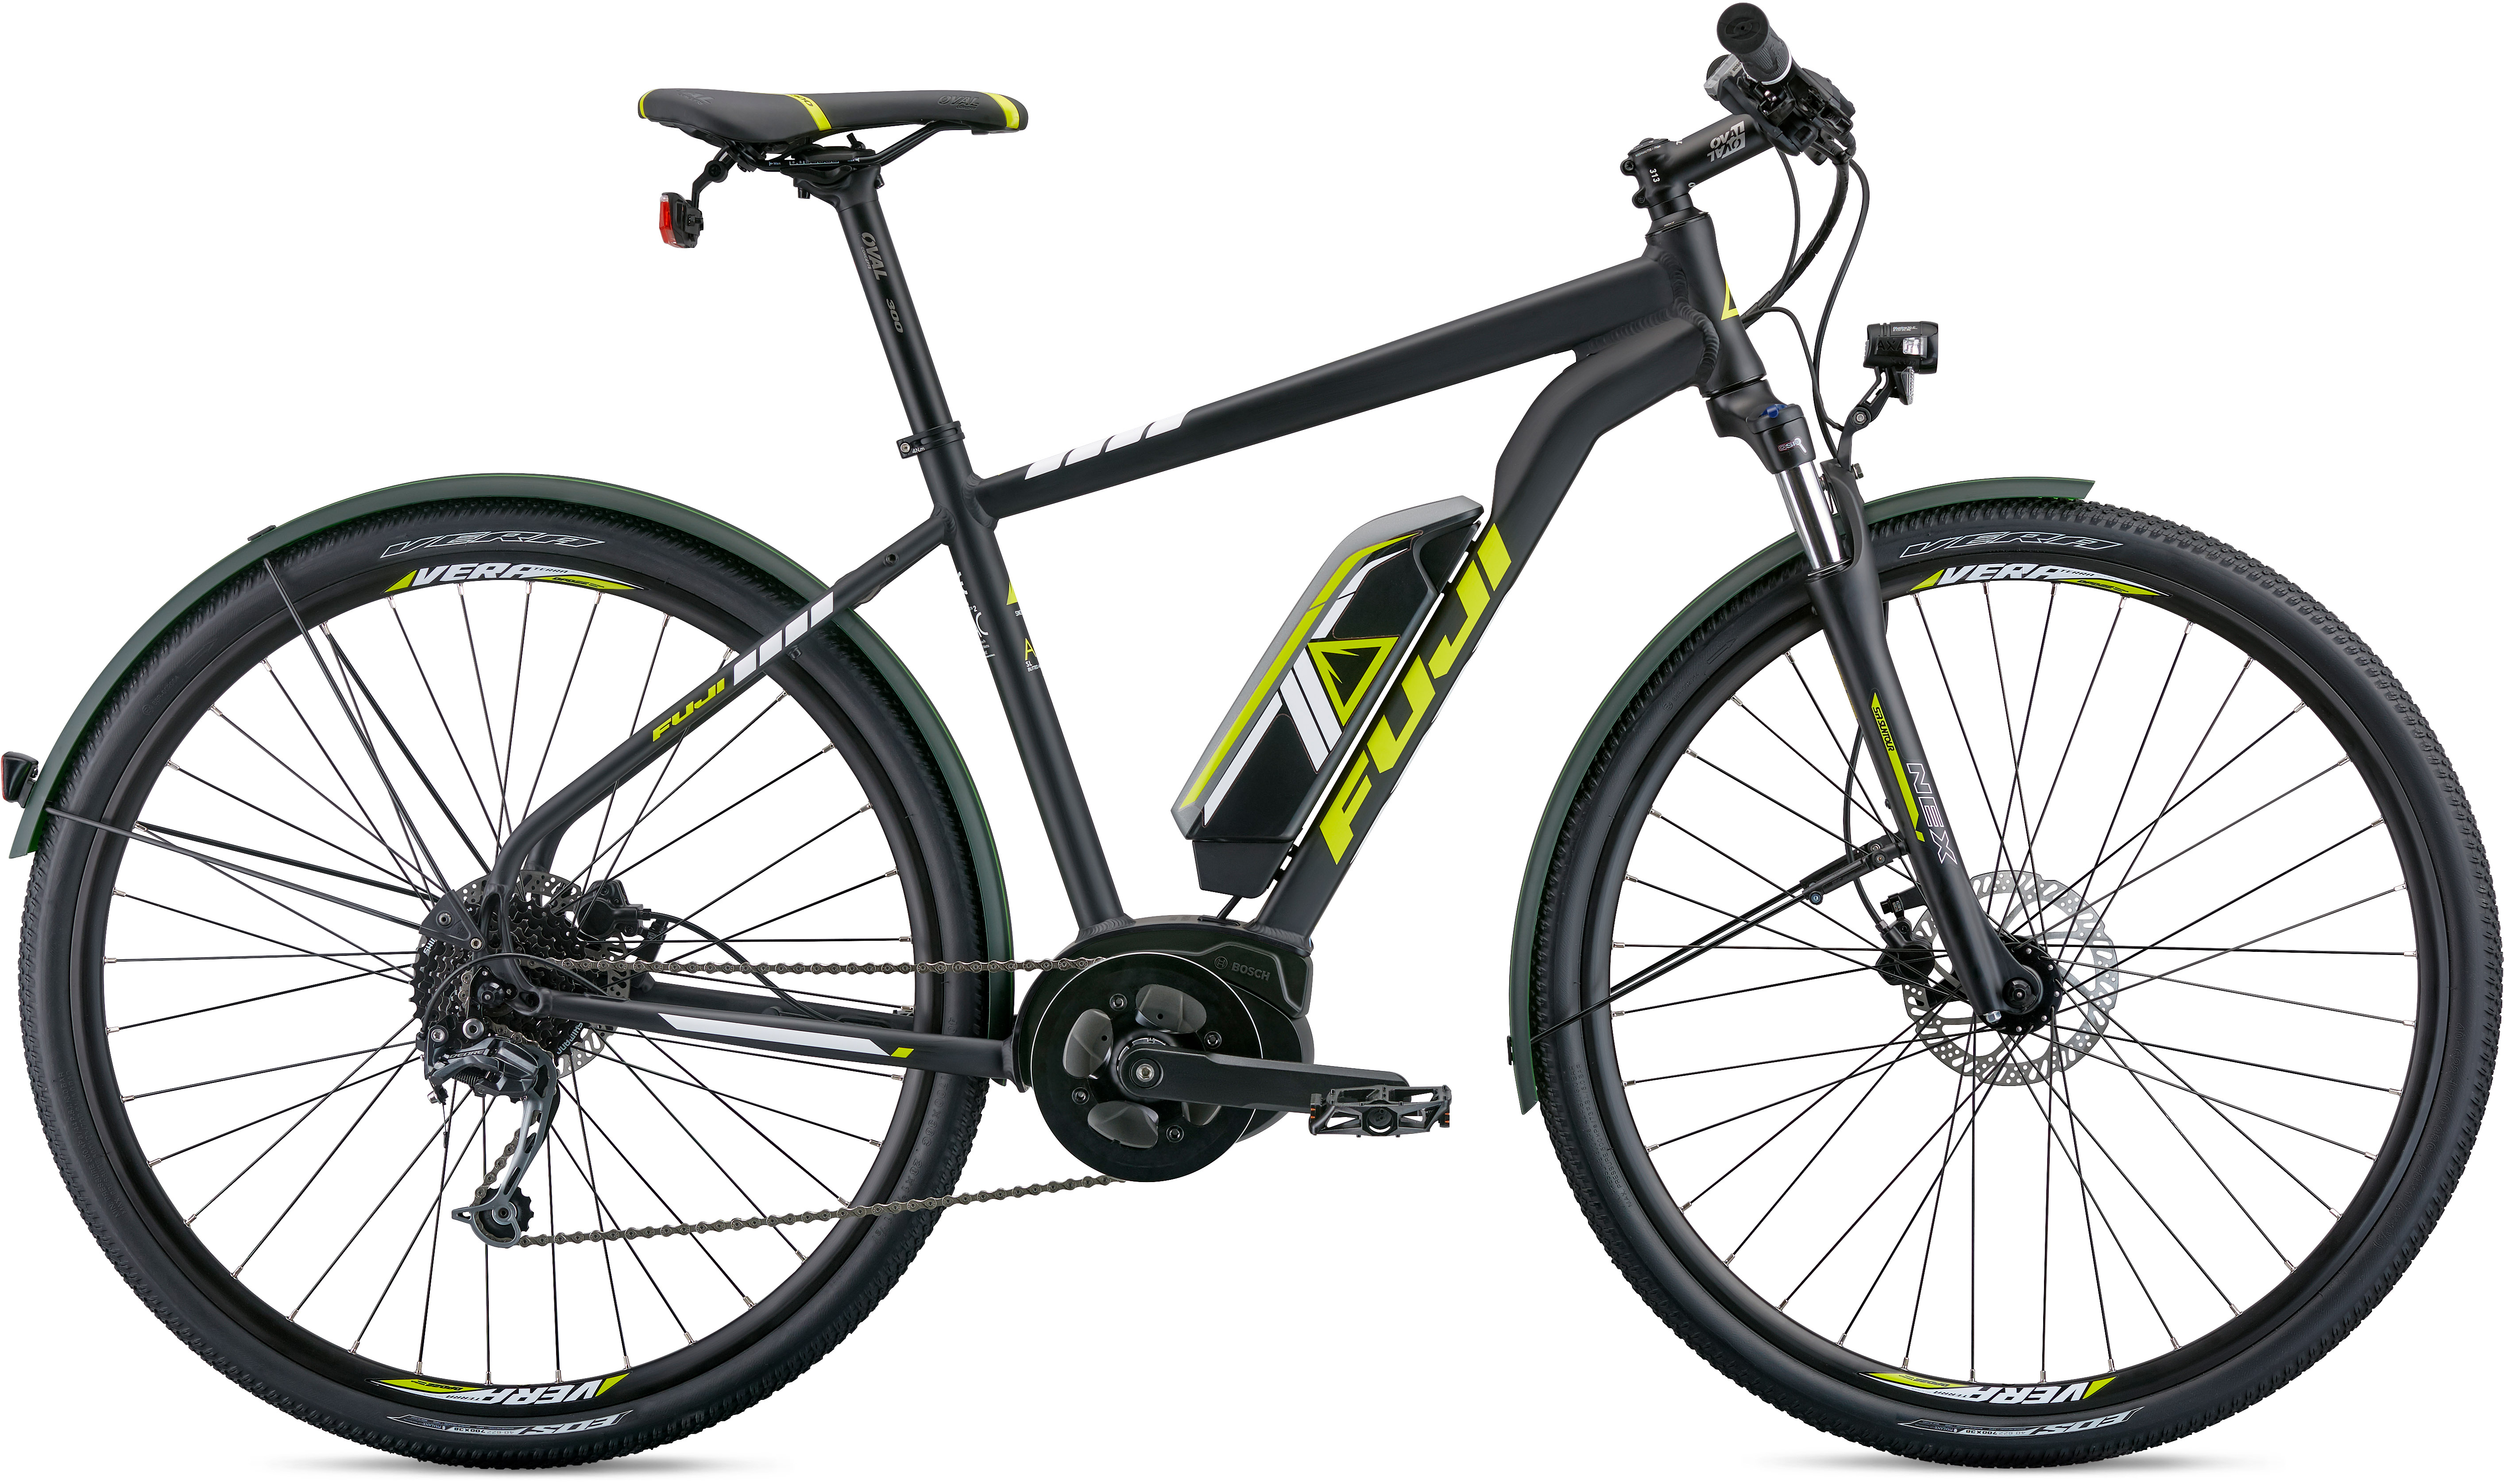 Fuji E-Traverse 1.3+ Intl E-Bike (2019) | City